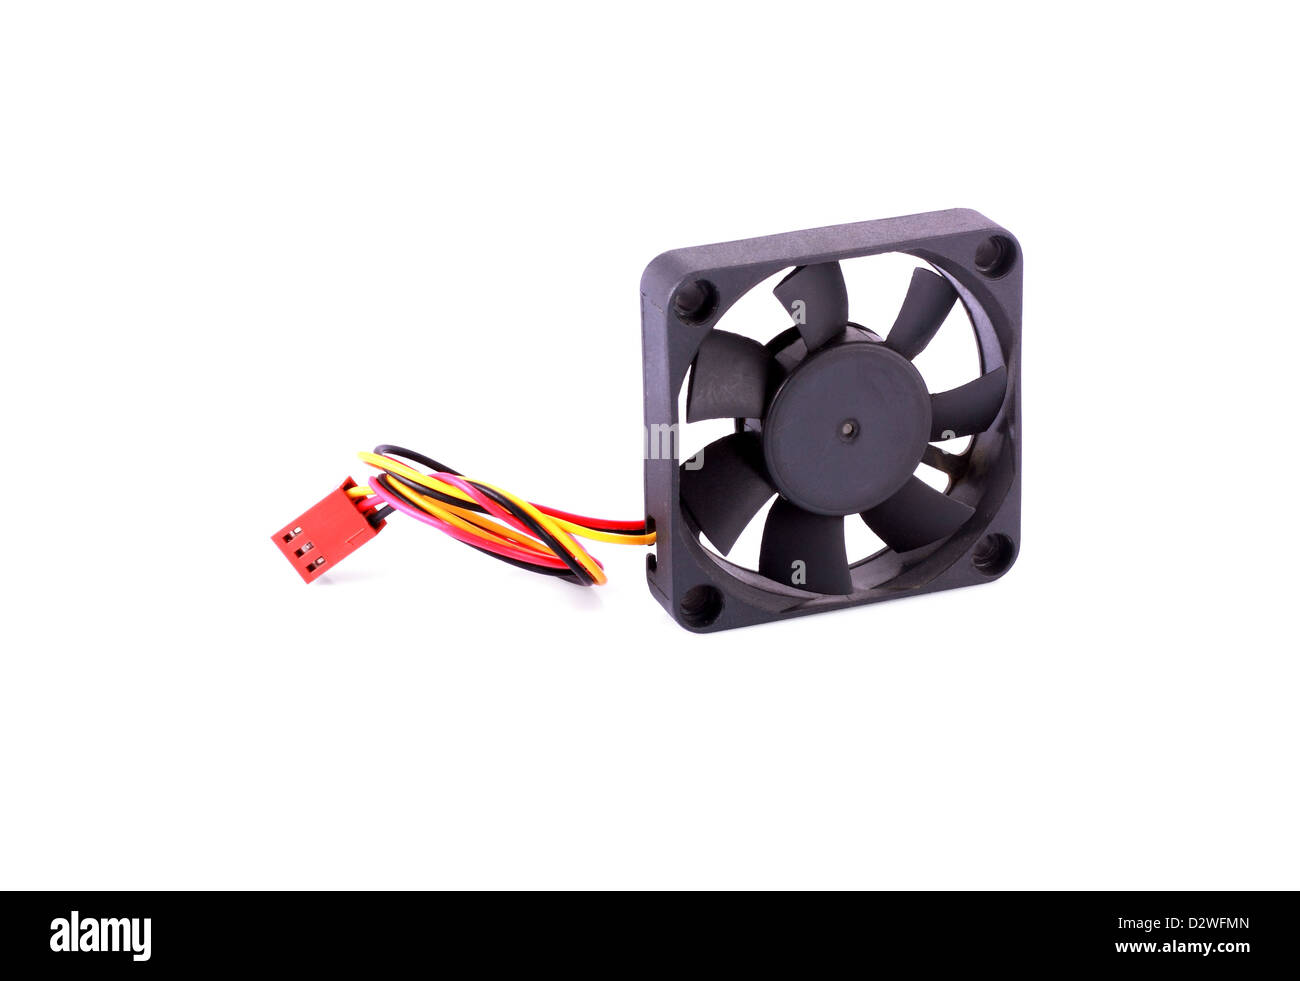 Computer Fan Stock Photos & Computer Fan Stock Images - Alamy